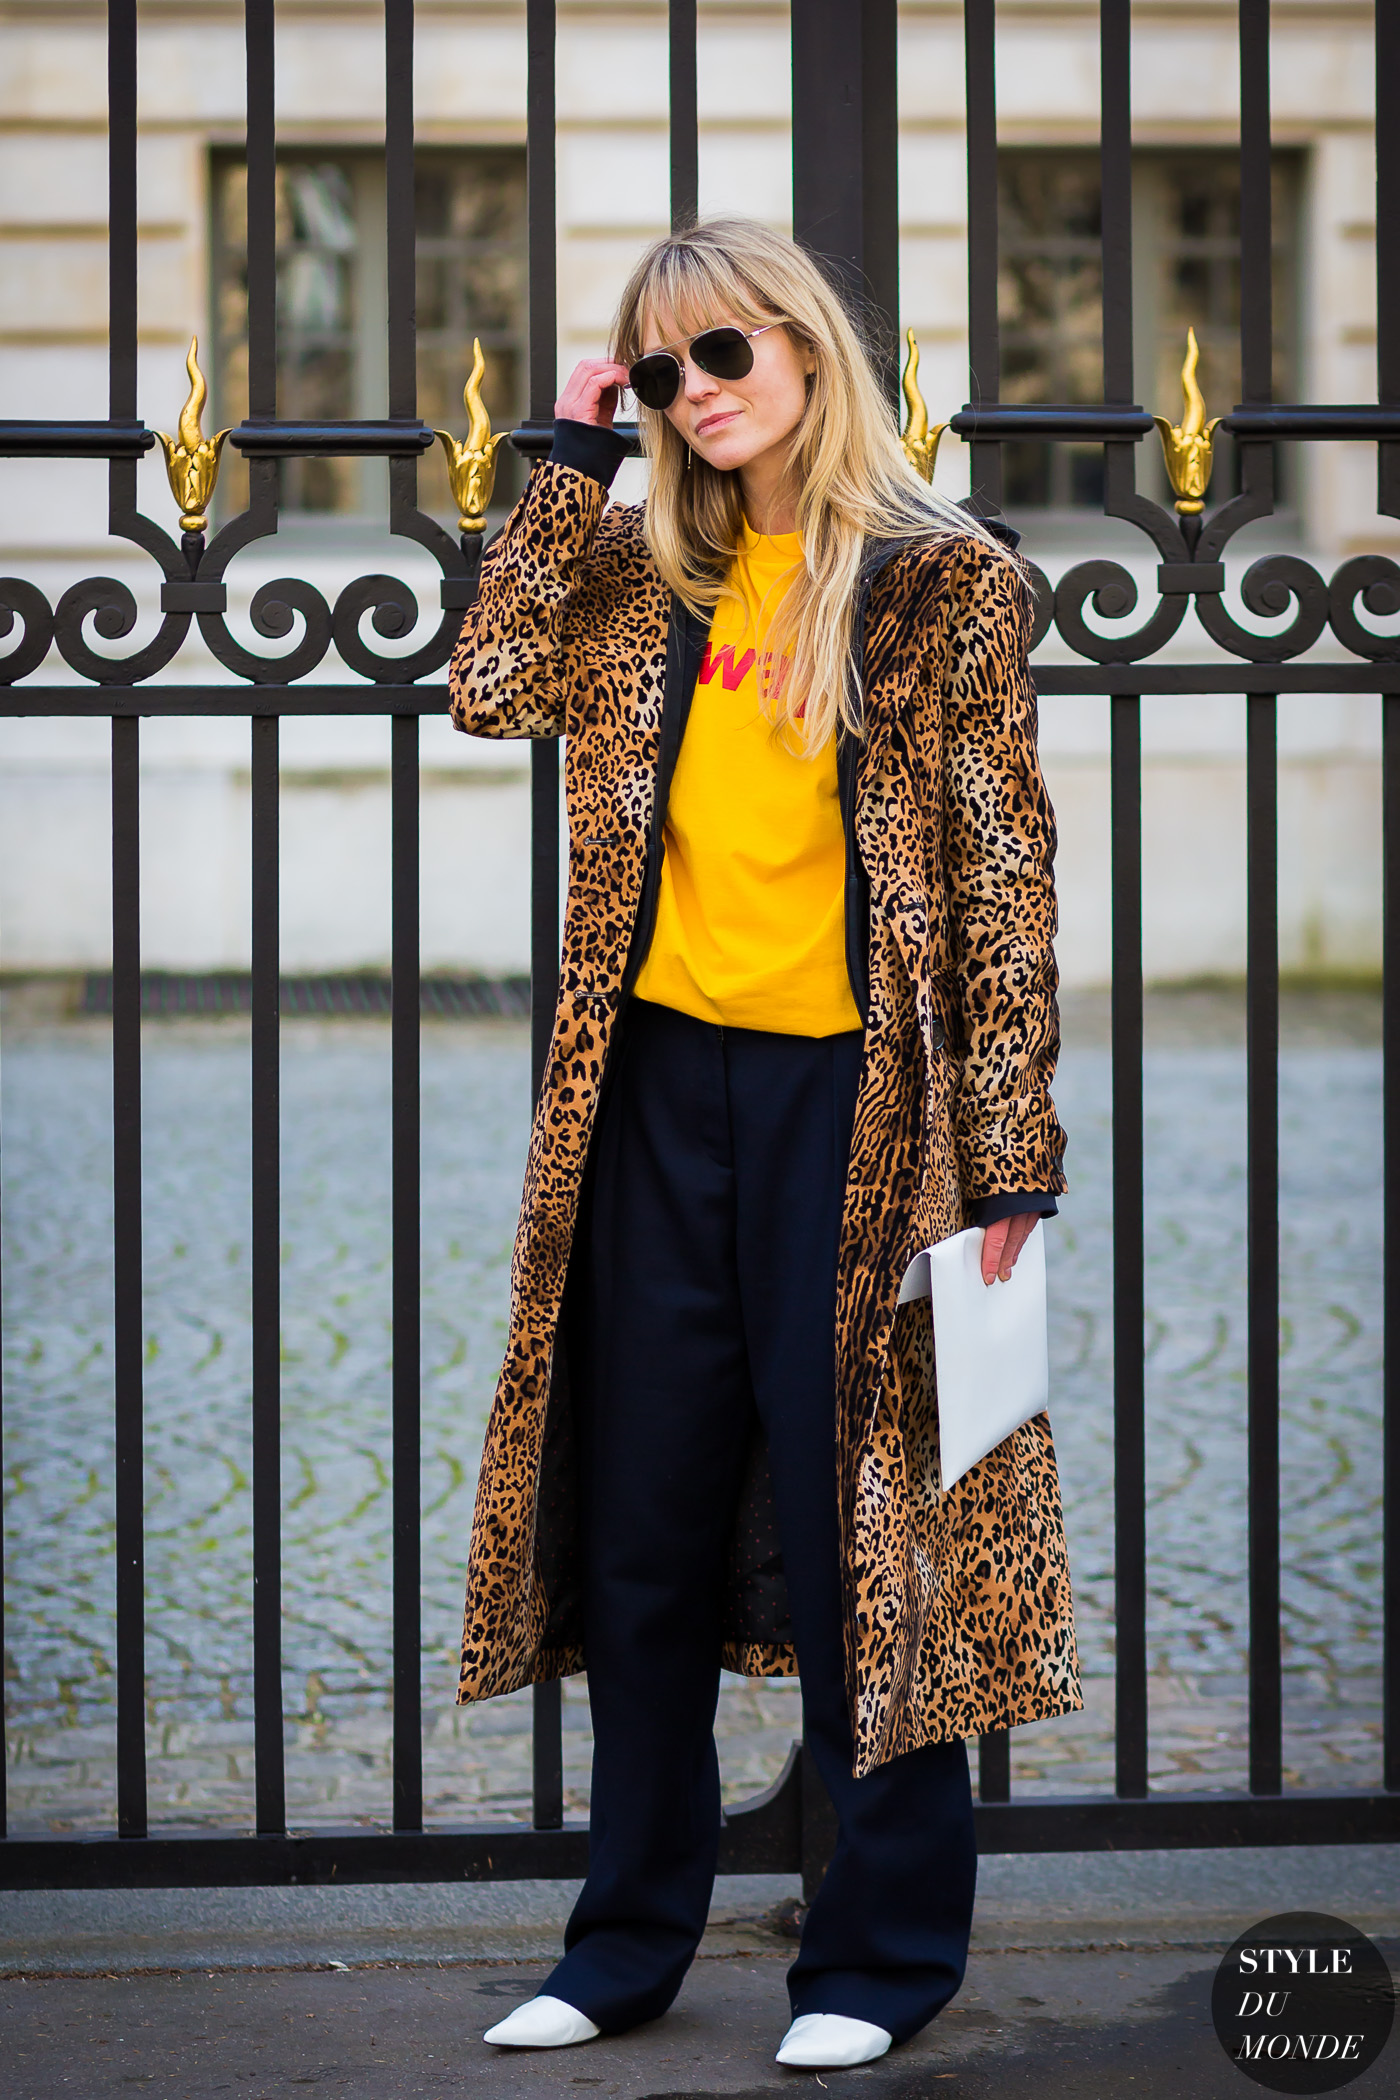 Jeanette Friis Madsen Street Style Street Fashion Streetsnaps by STYLEDUMONDE Street Style Fashion Photography